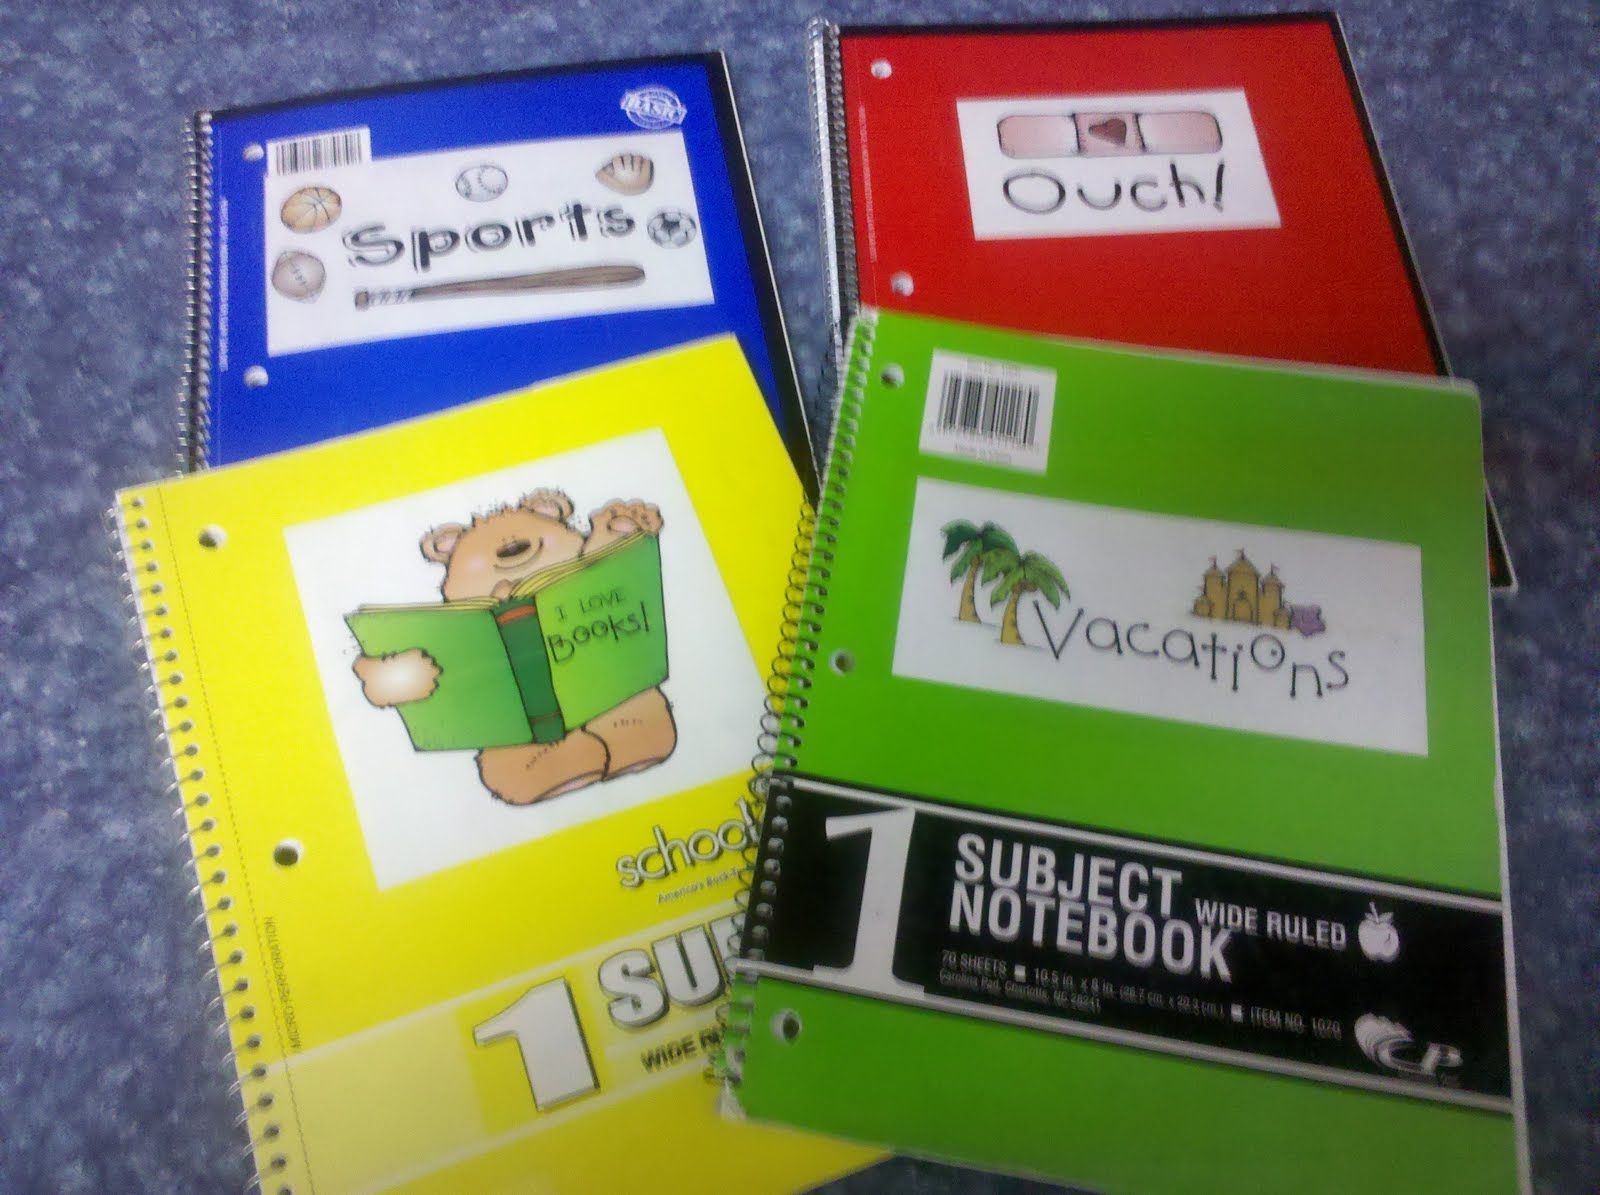 Each notebook has a topic   students take turns using the same